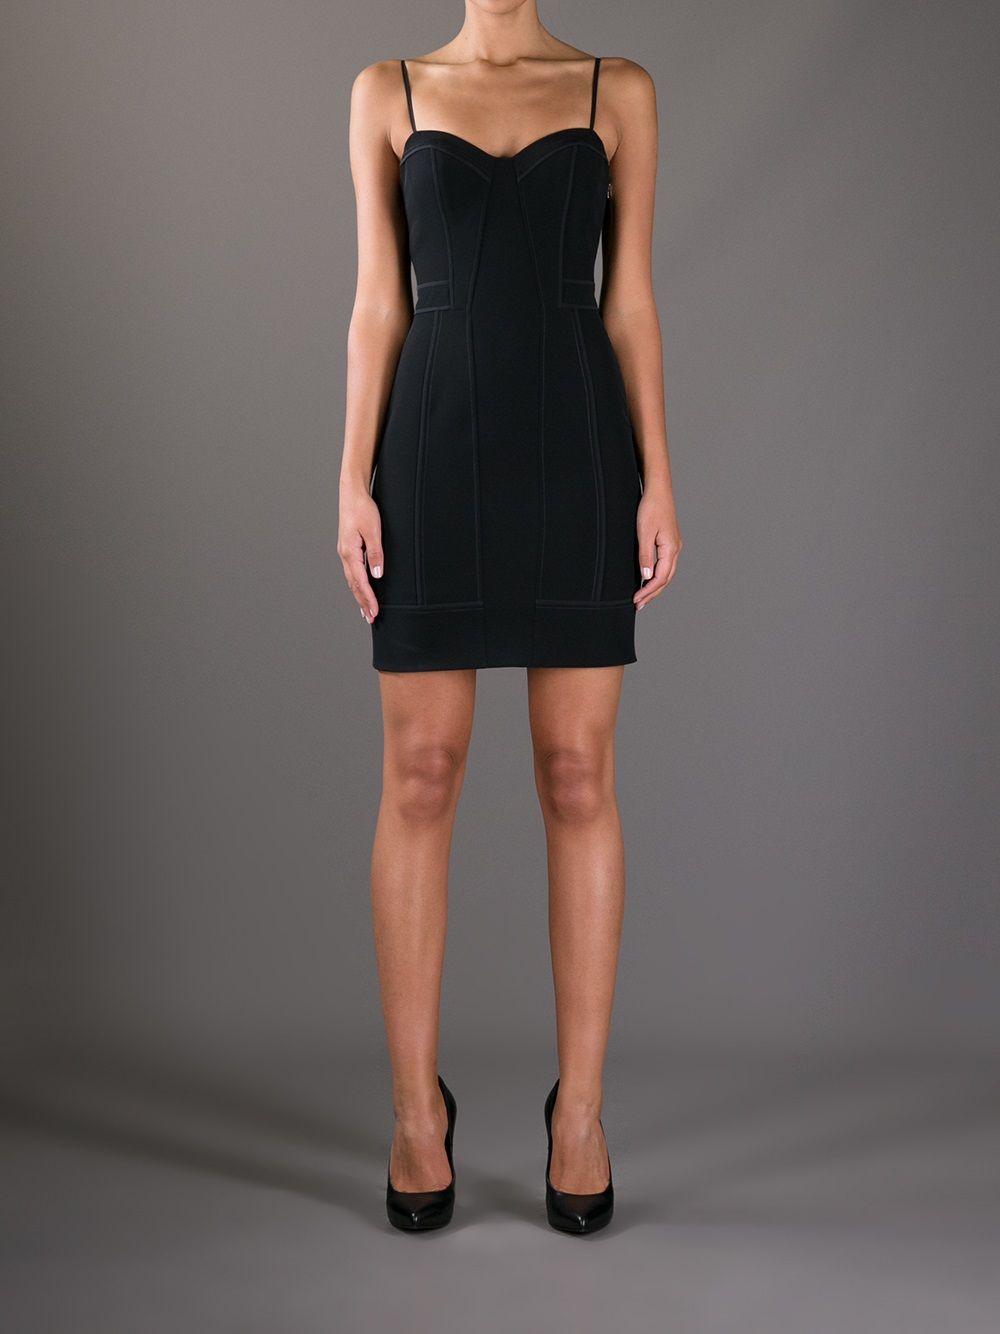 Lyst Alexander Wang Fitted Spaghetti Strap Dress In Black